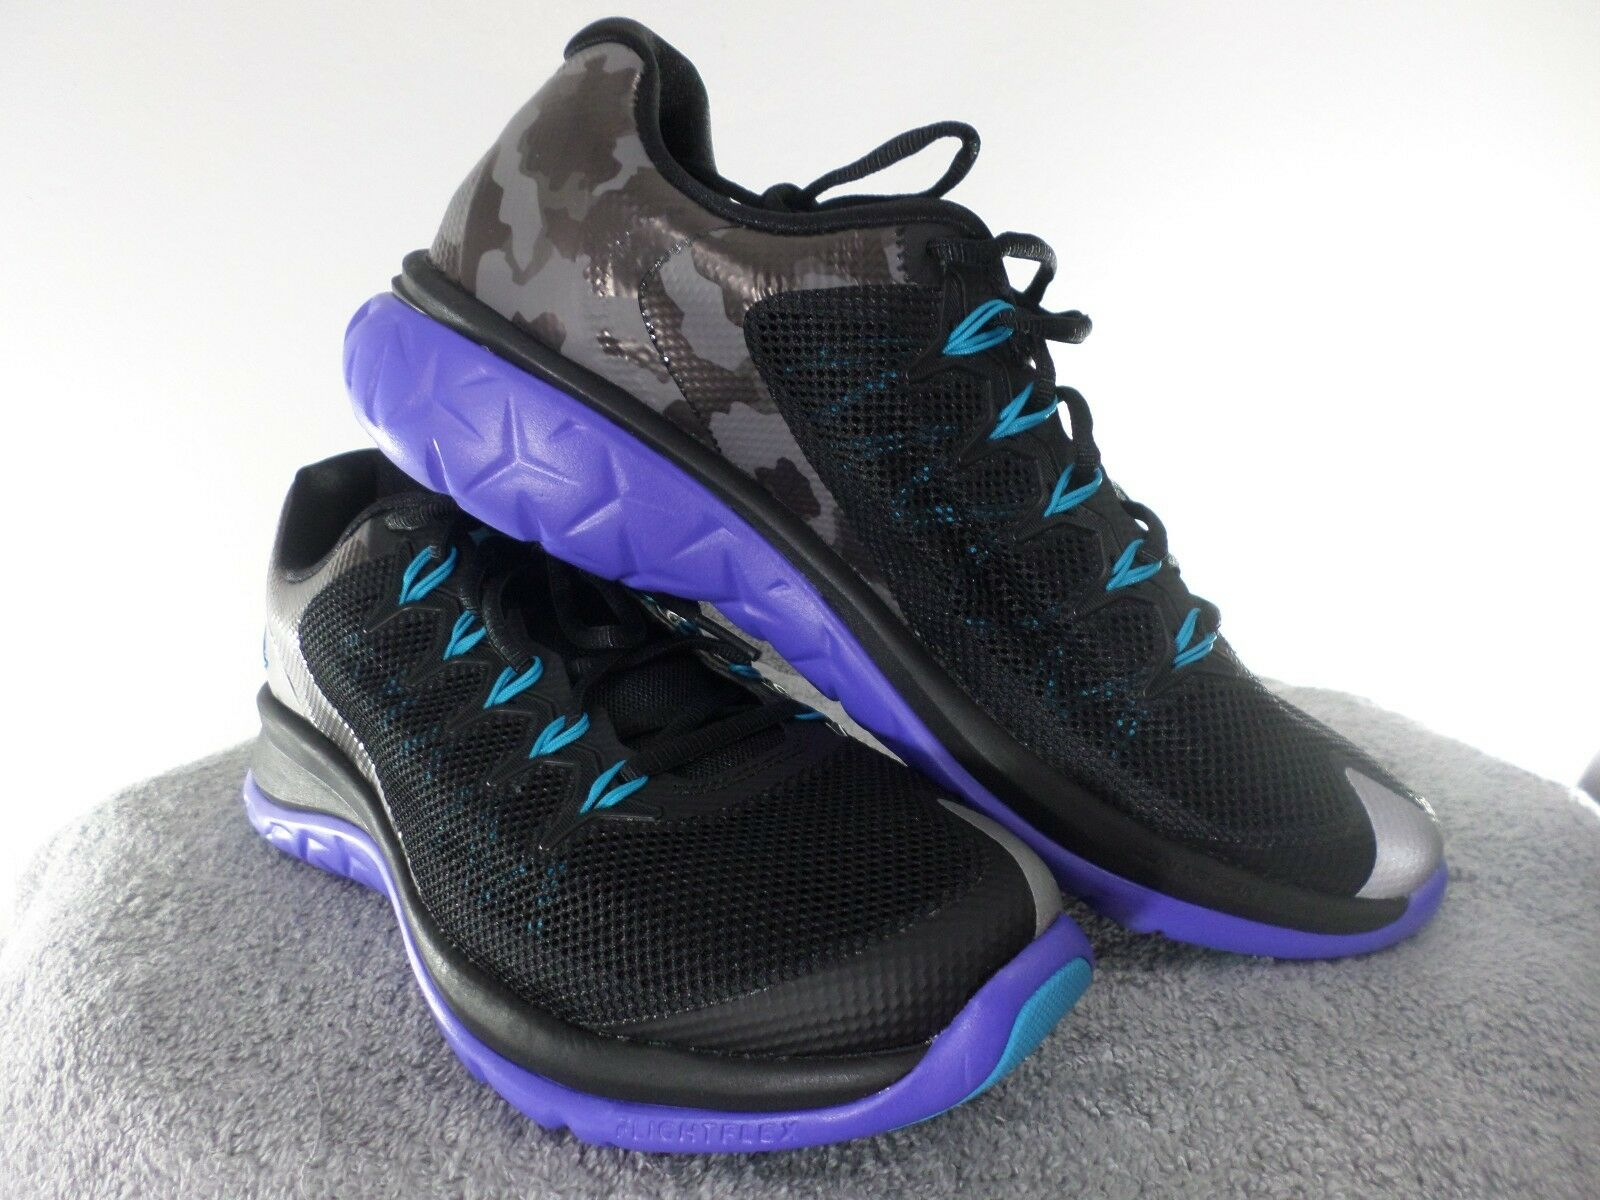 NIKE JORDAN FLIGHT RUNNER 2 SNEAKERS BLACK BLUE LAGOON CONCORD 715572 007 10 NEW The latest discount shoes for men and women